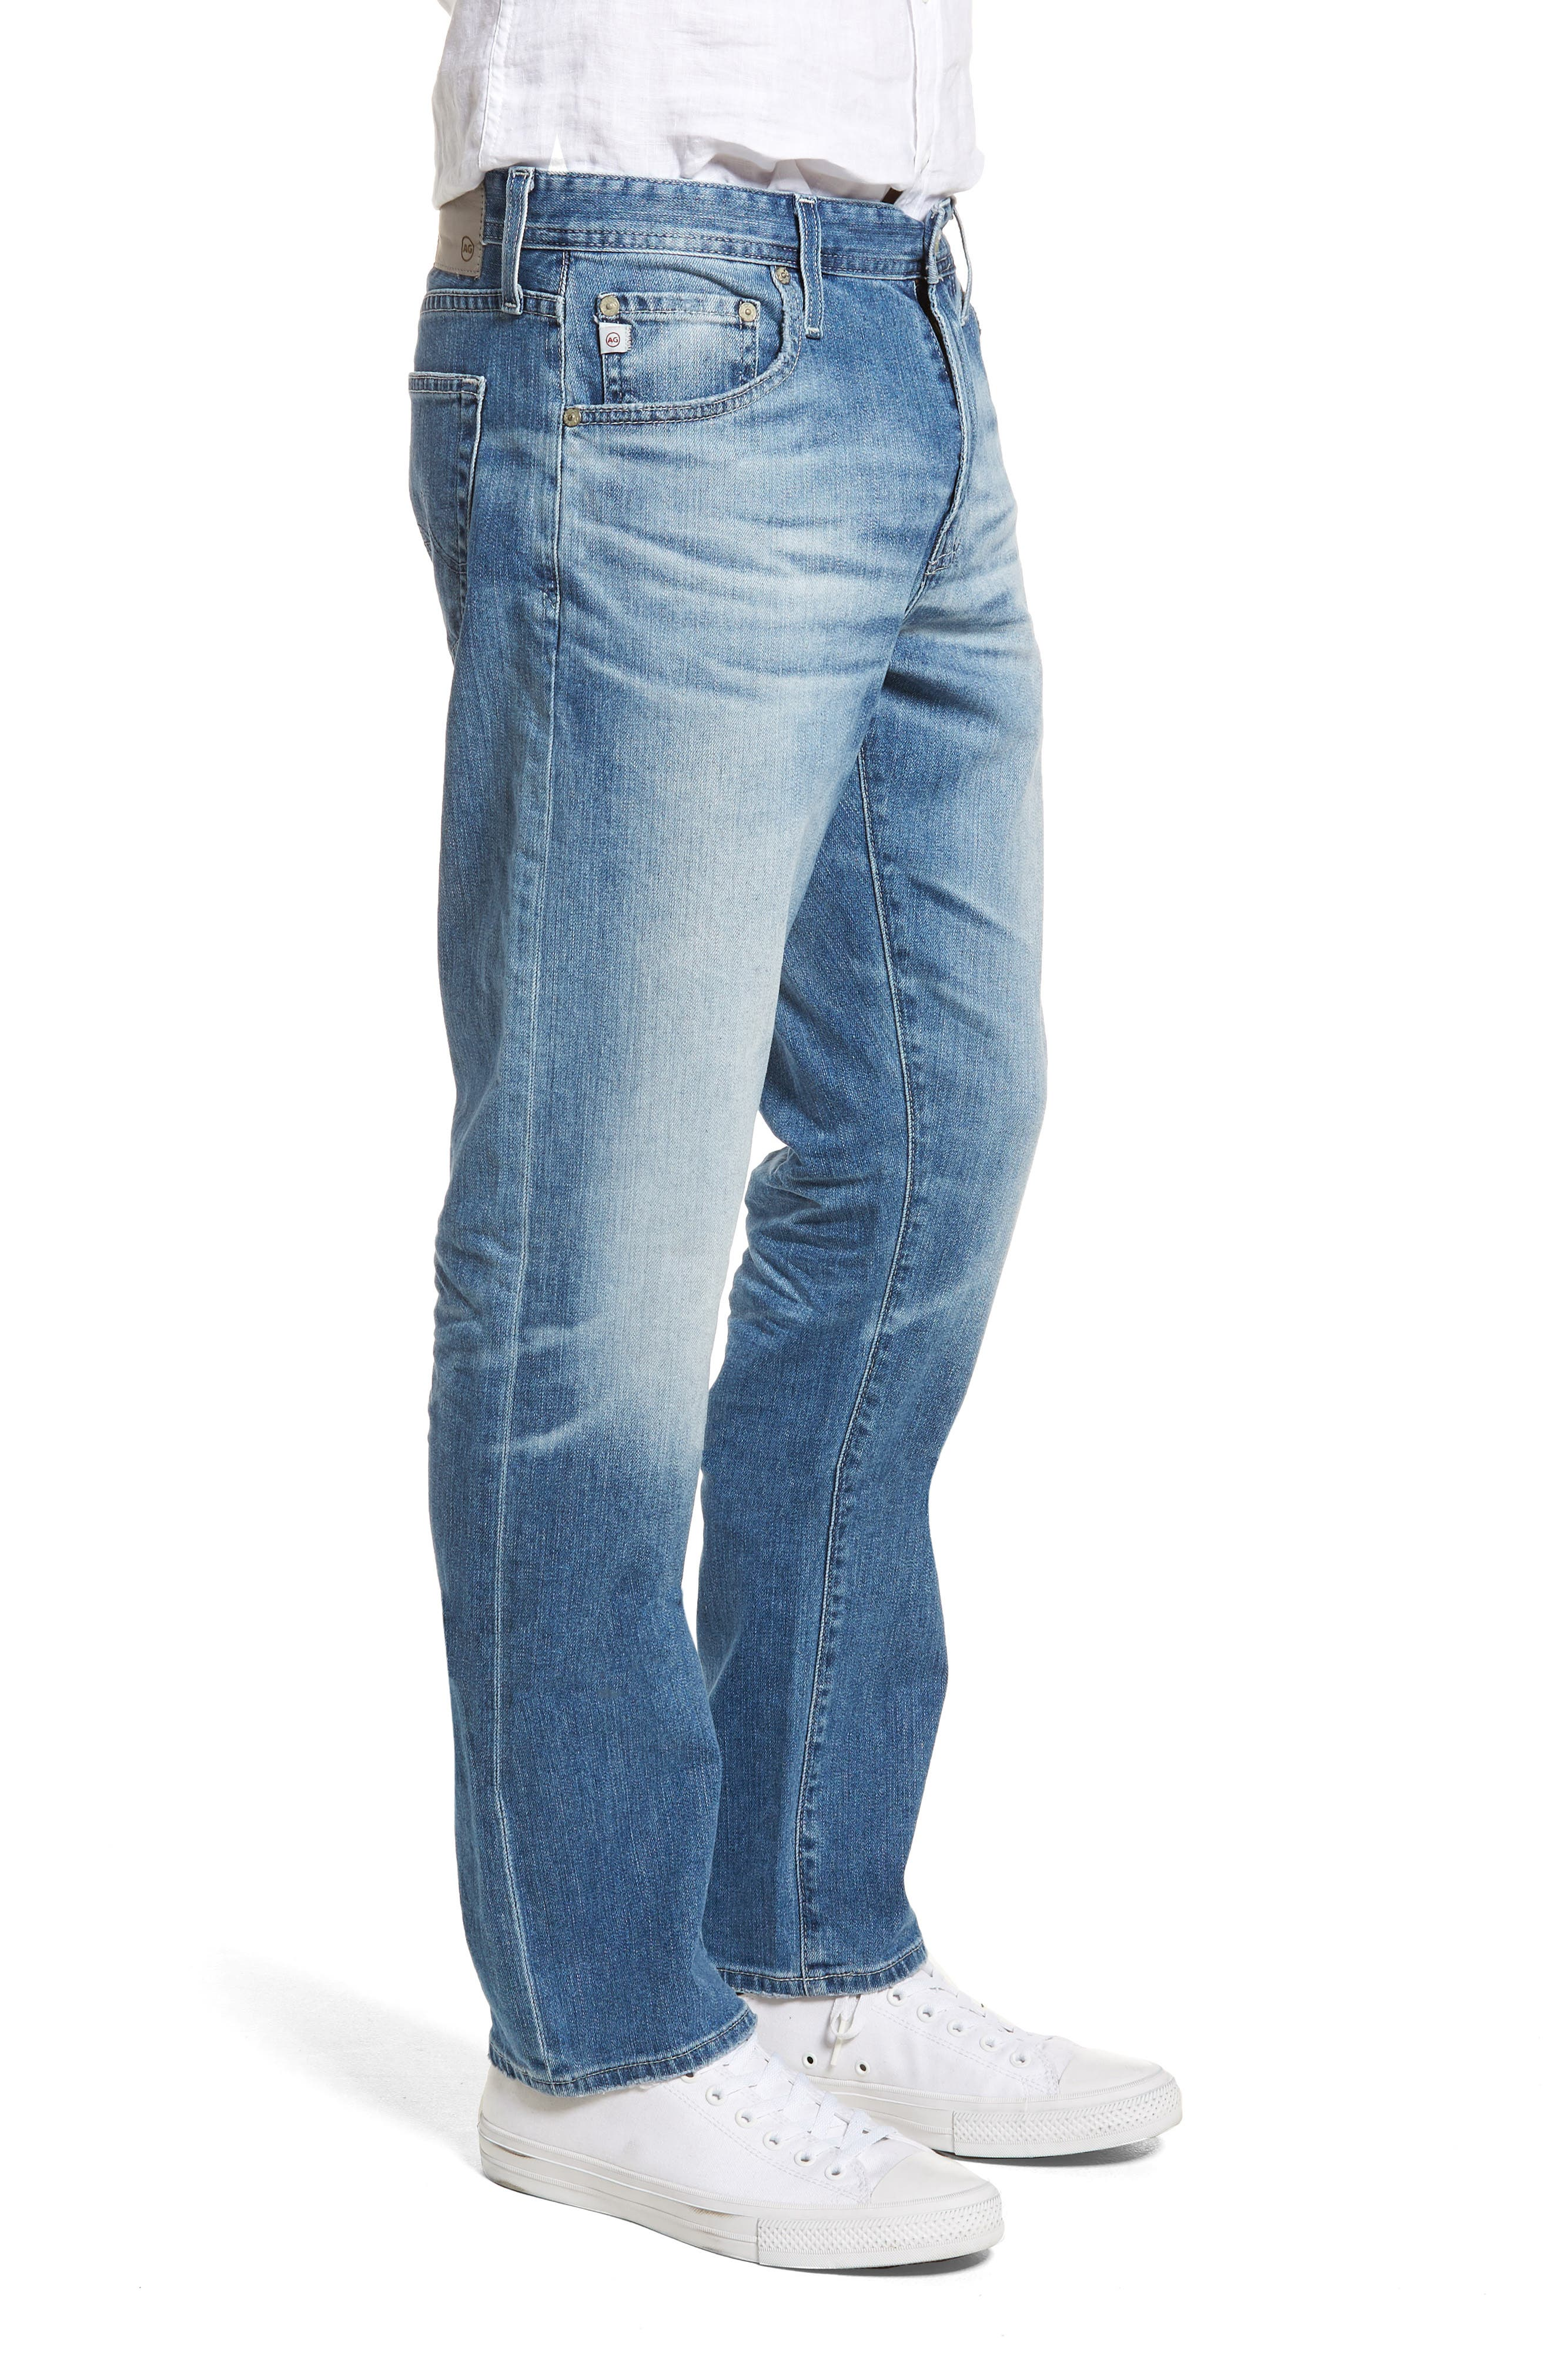 Ives Straight Leg Jeans,                             Alternate thumbnail 3, color,                             15 Years Aground